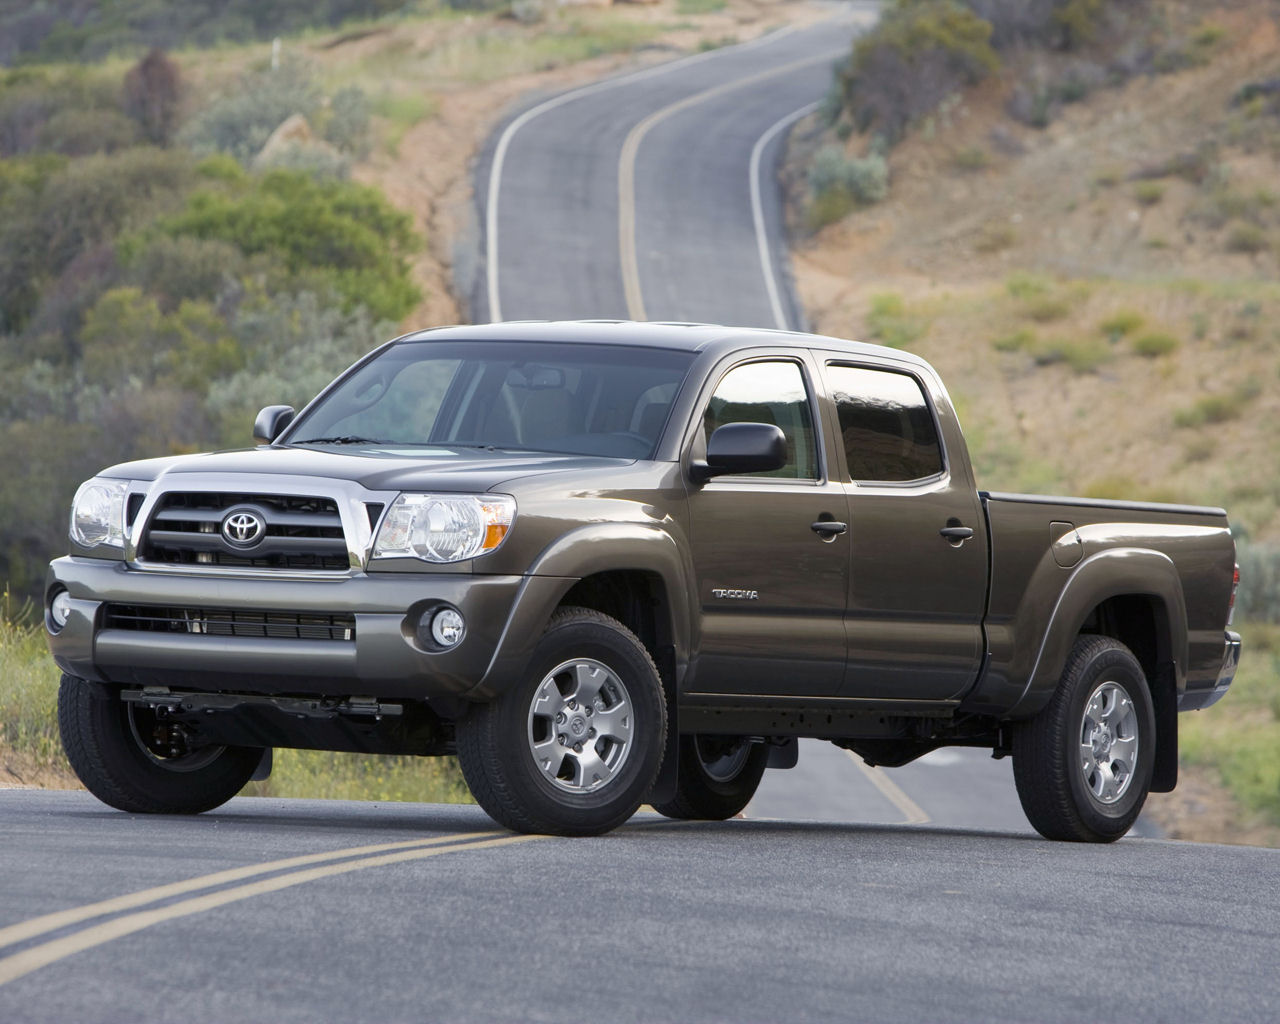 Toyota Tacoma Wallpaper 5525 Hd Wallpapers in Cars   Imagescicom 1280x1024